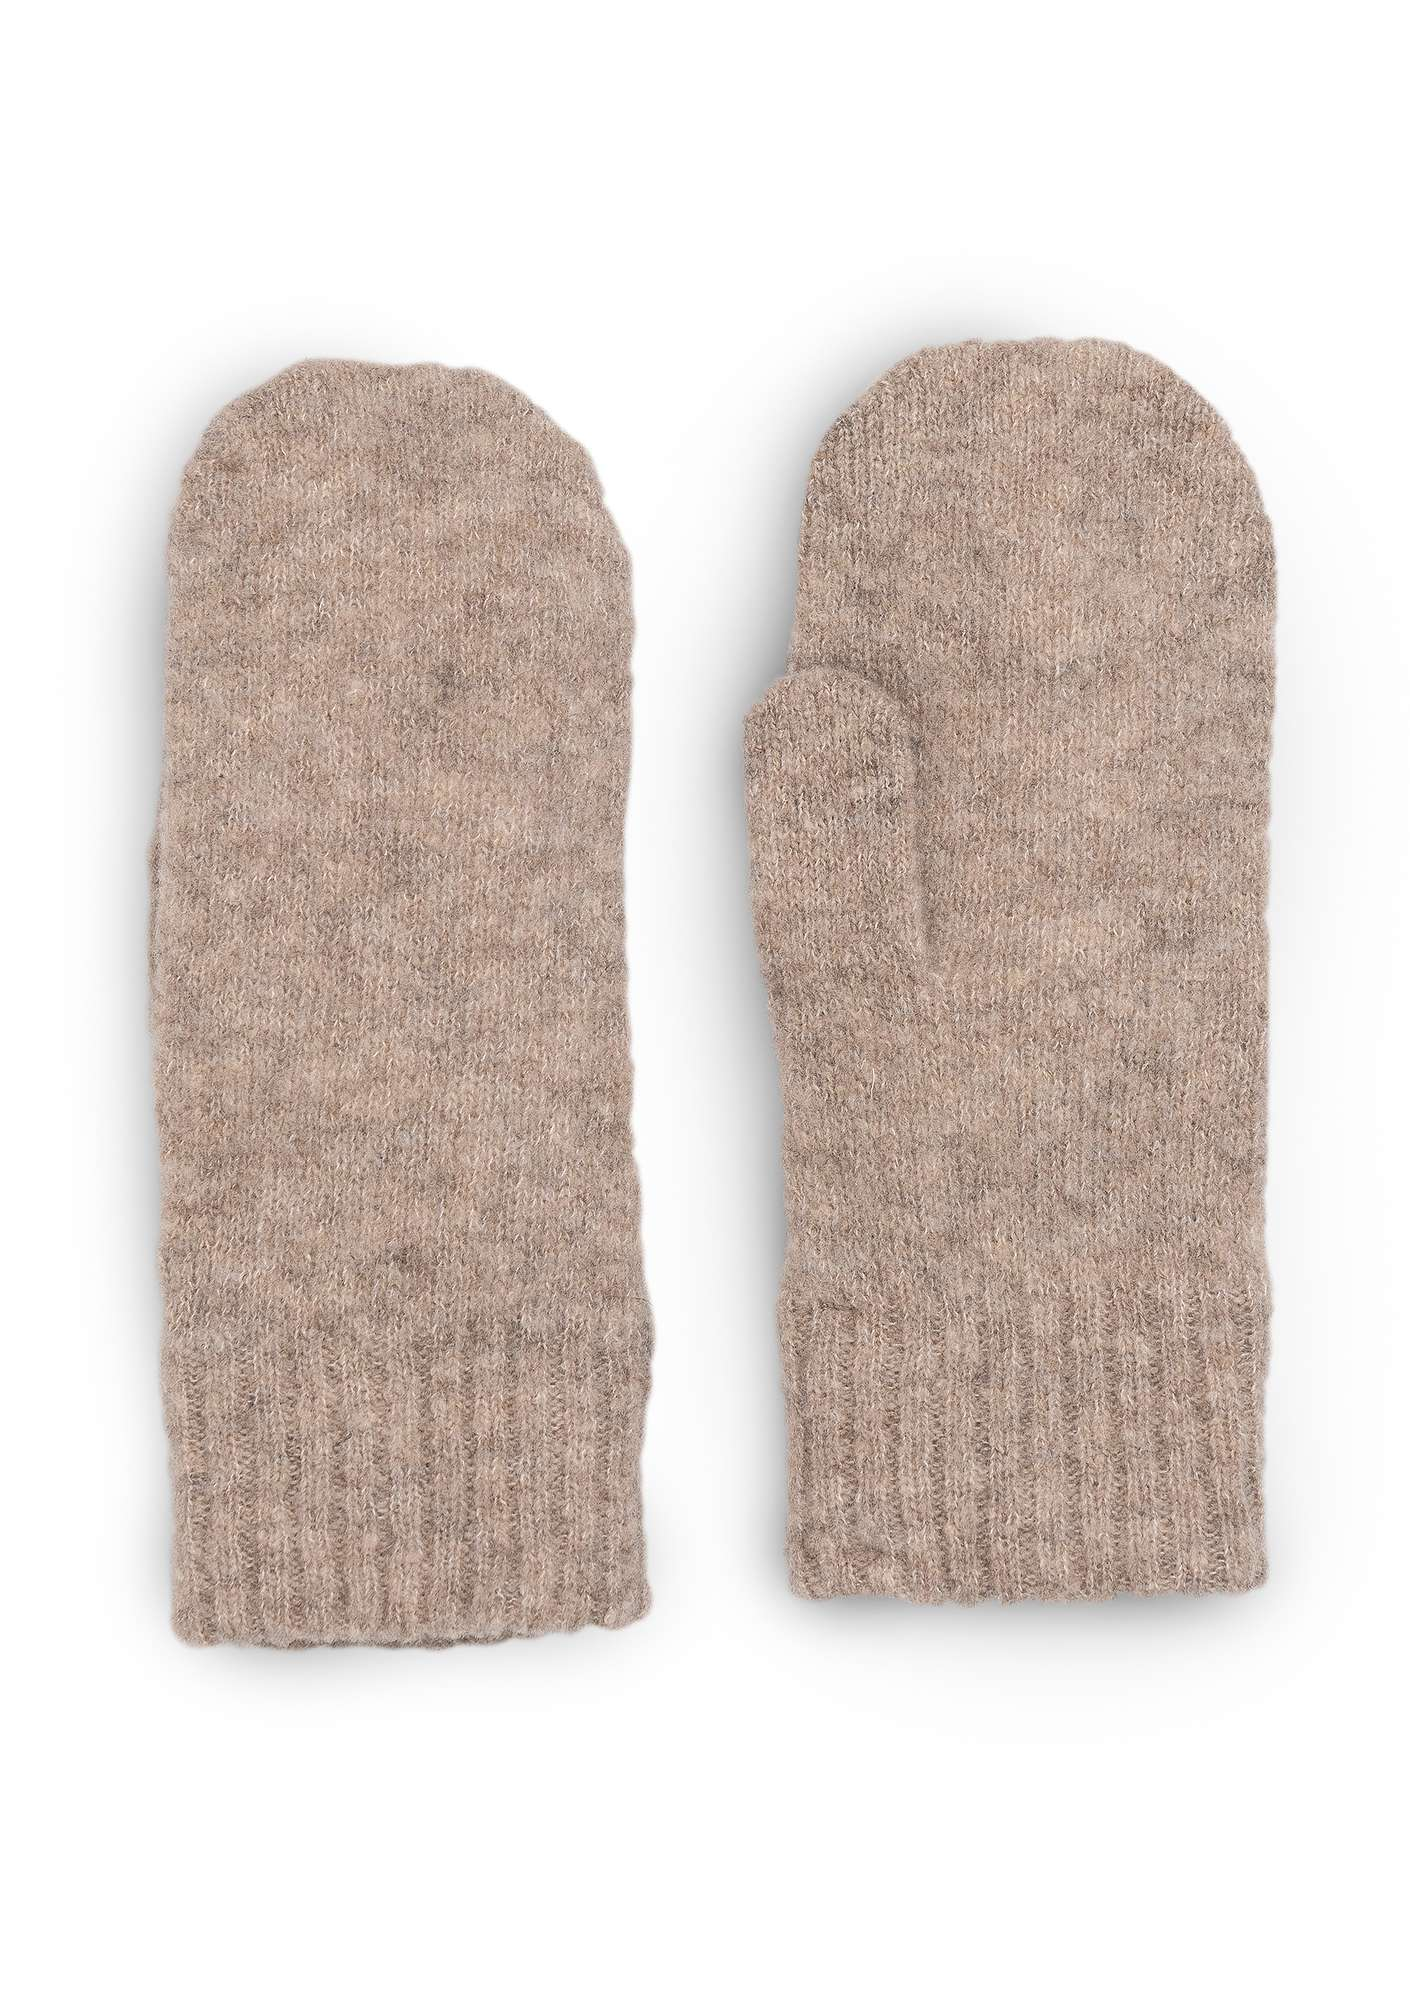 Knit mittens in a recycled cashmere blend putty